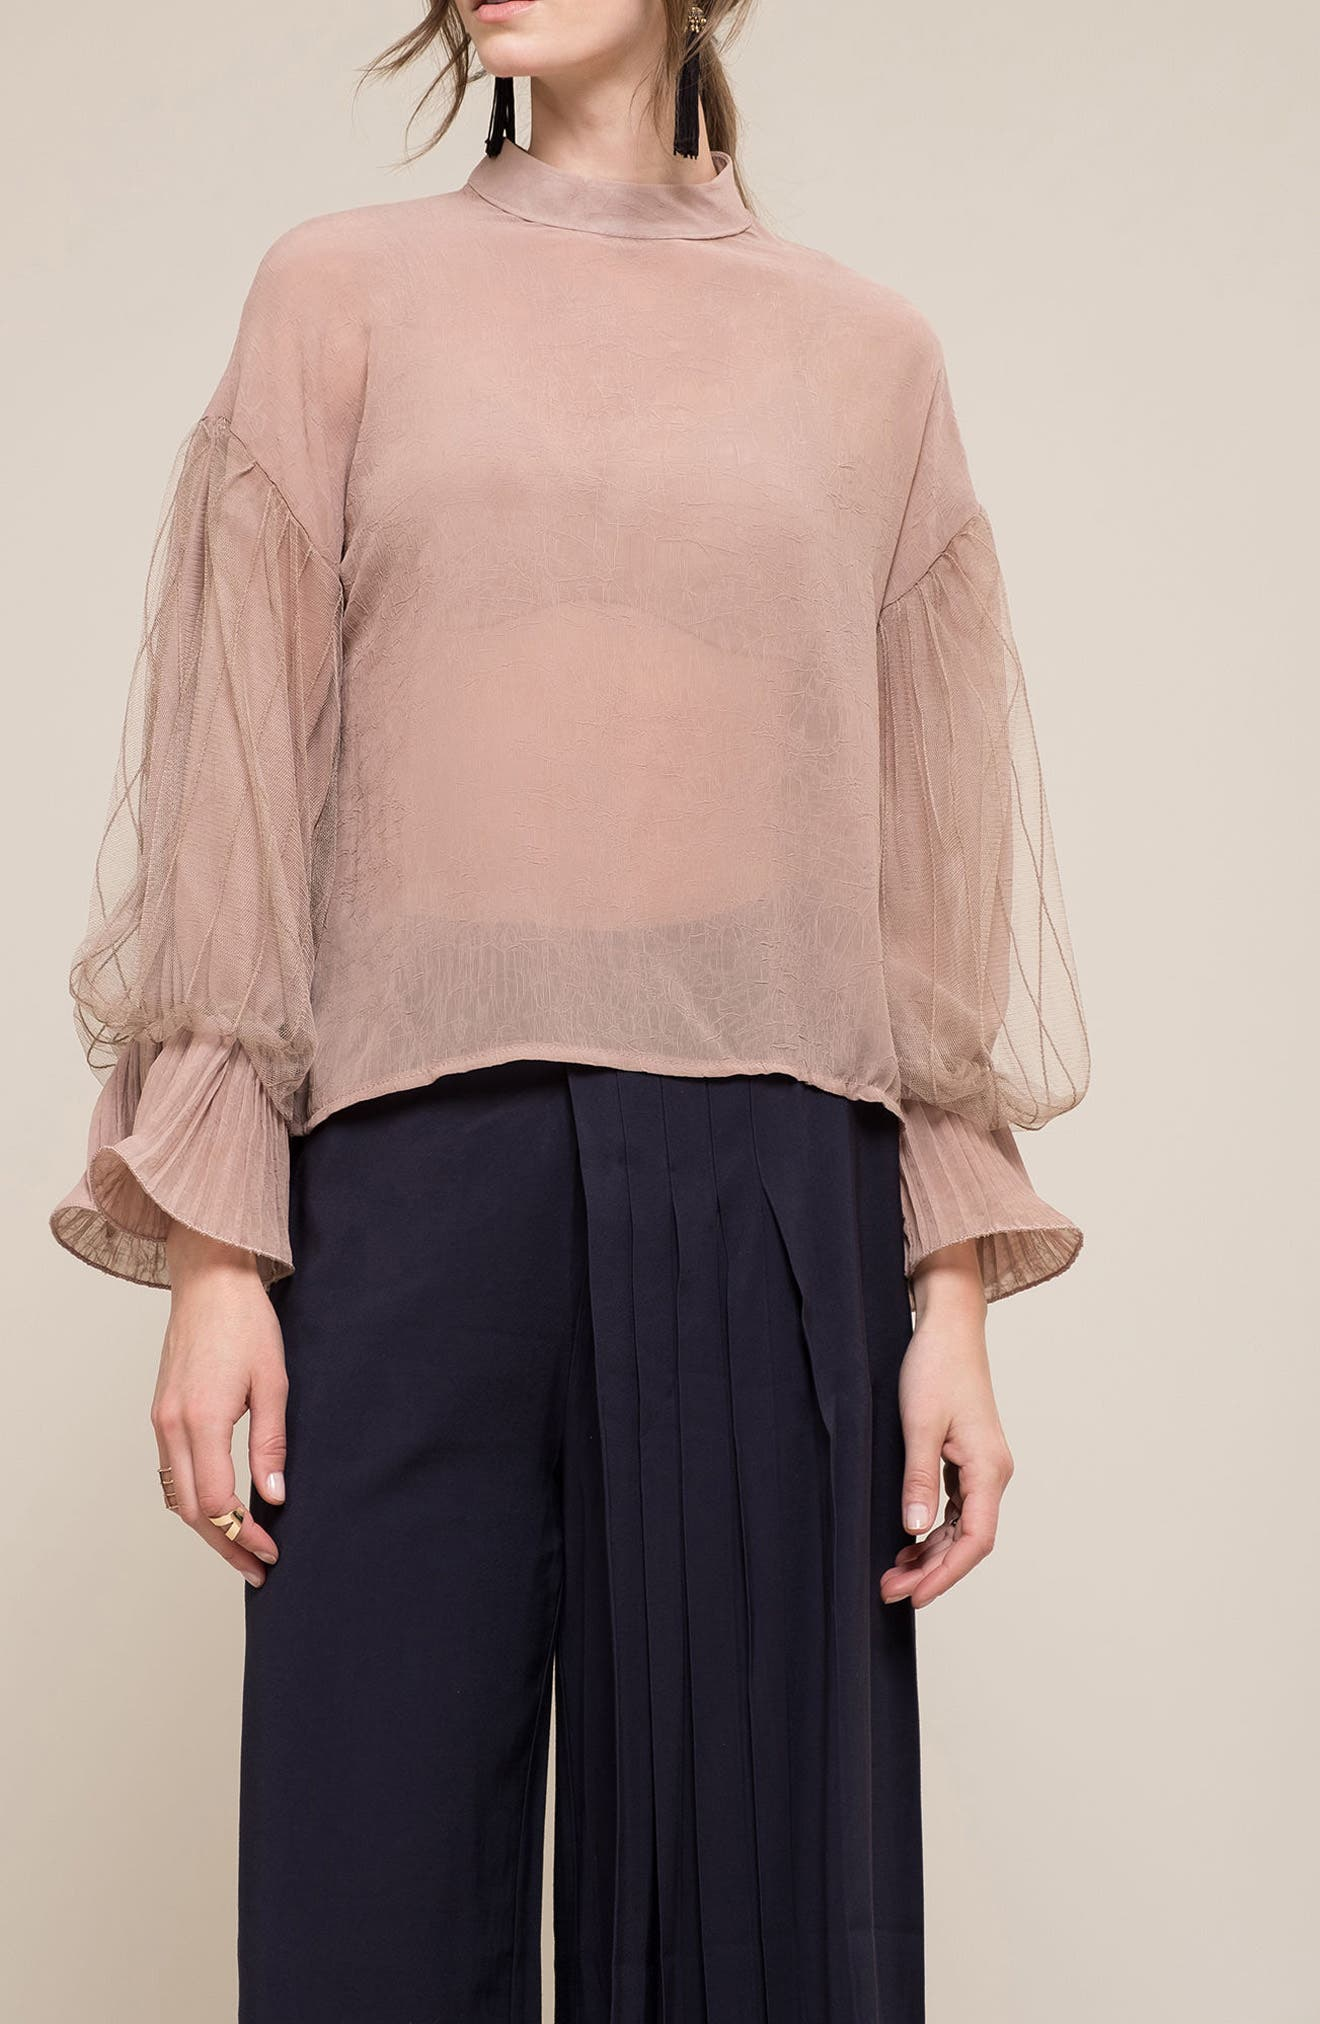 Tulle Puff Sleeve Top,                             Alternate thumbnail 7, color,                             650